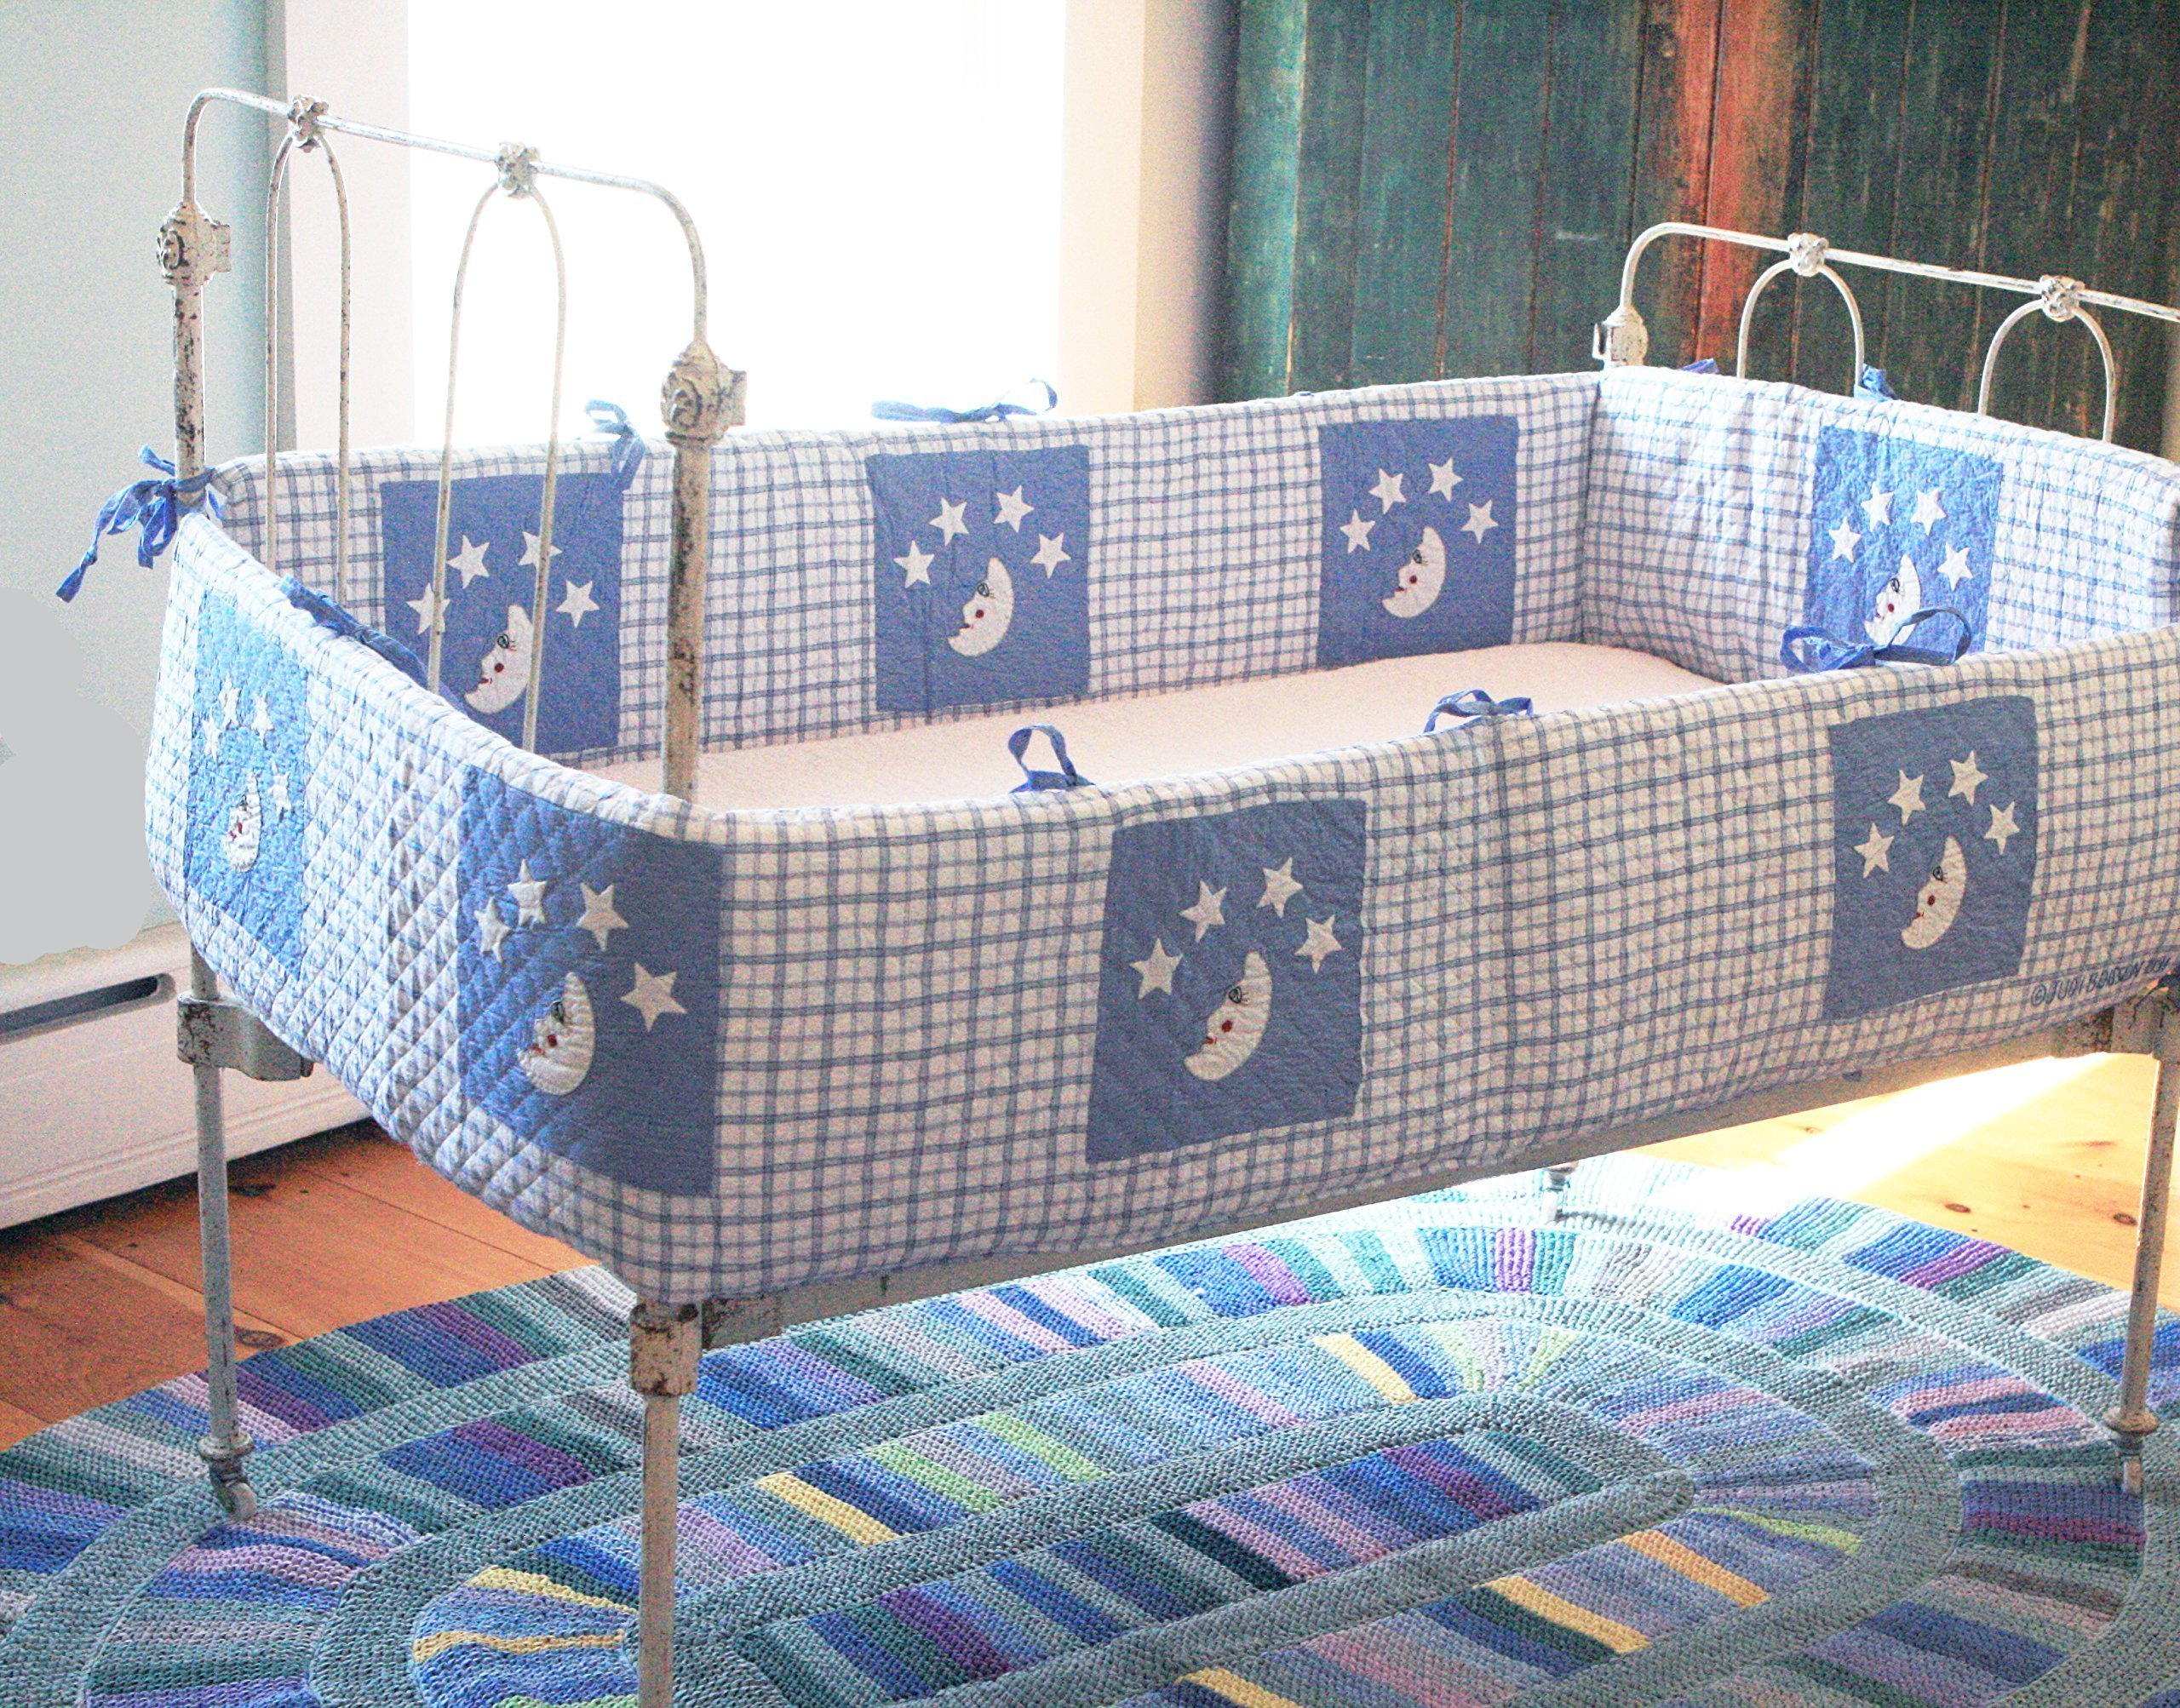 Designed by Judi Boisson,'' Mr. Moon'' Bumper with his Sky Blue Eyes was able to see all the Stars Above and Beyond. Hand Quilted, Appliqued, and Embroidered. Reversible. Cotton.